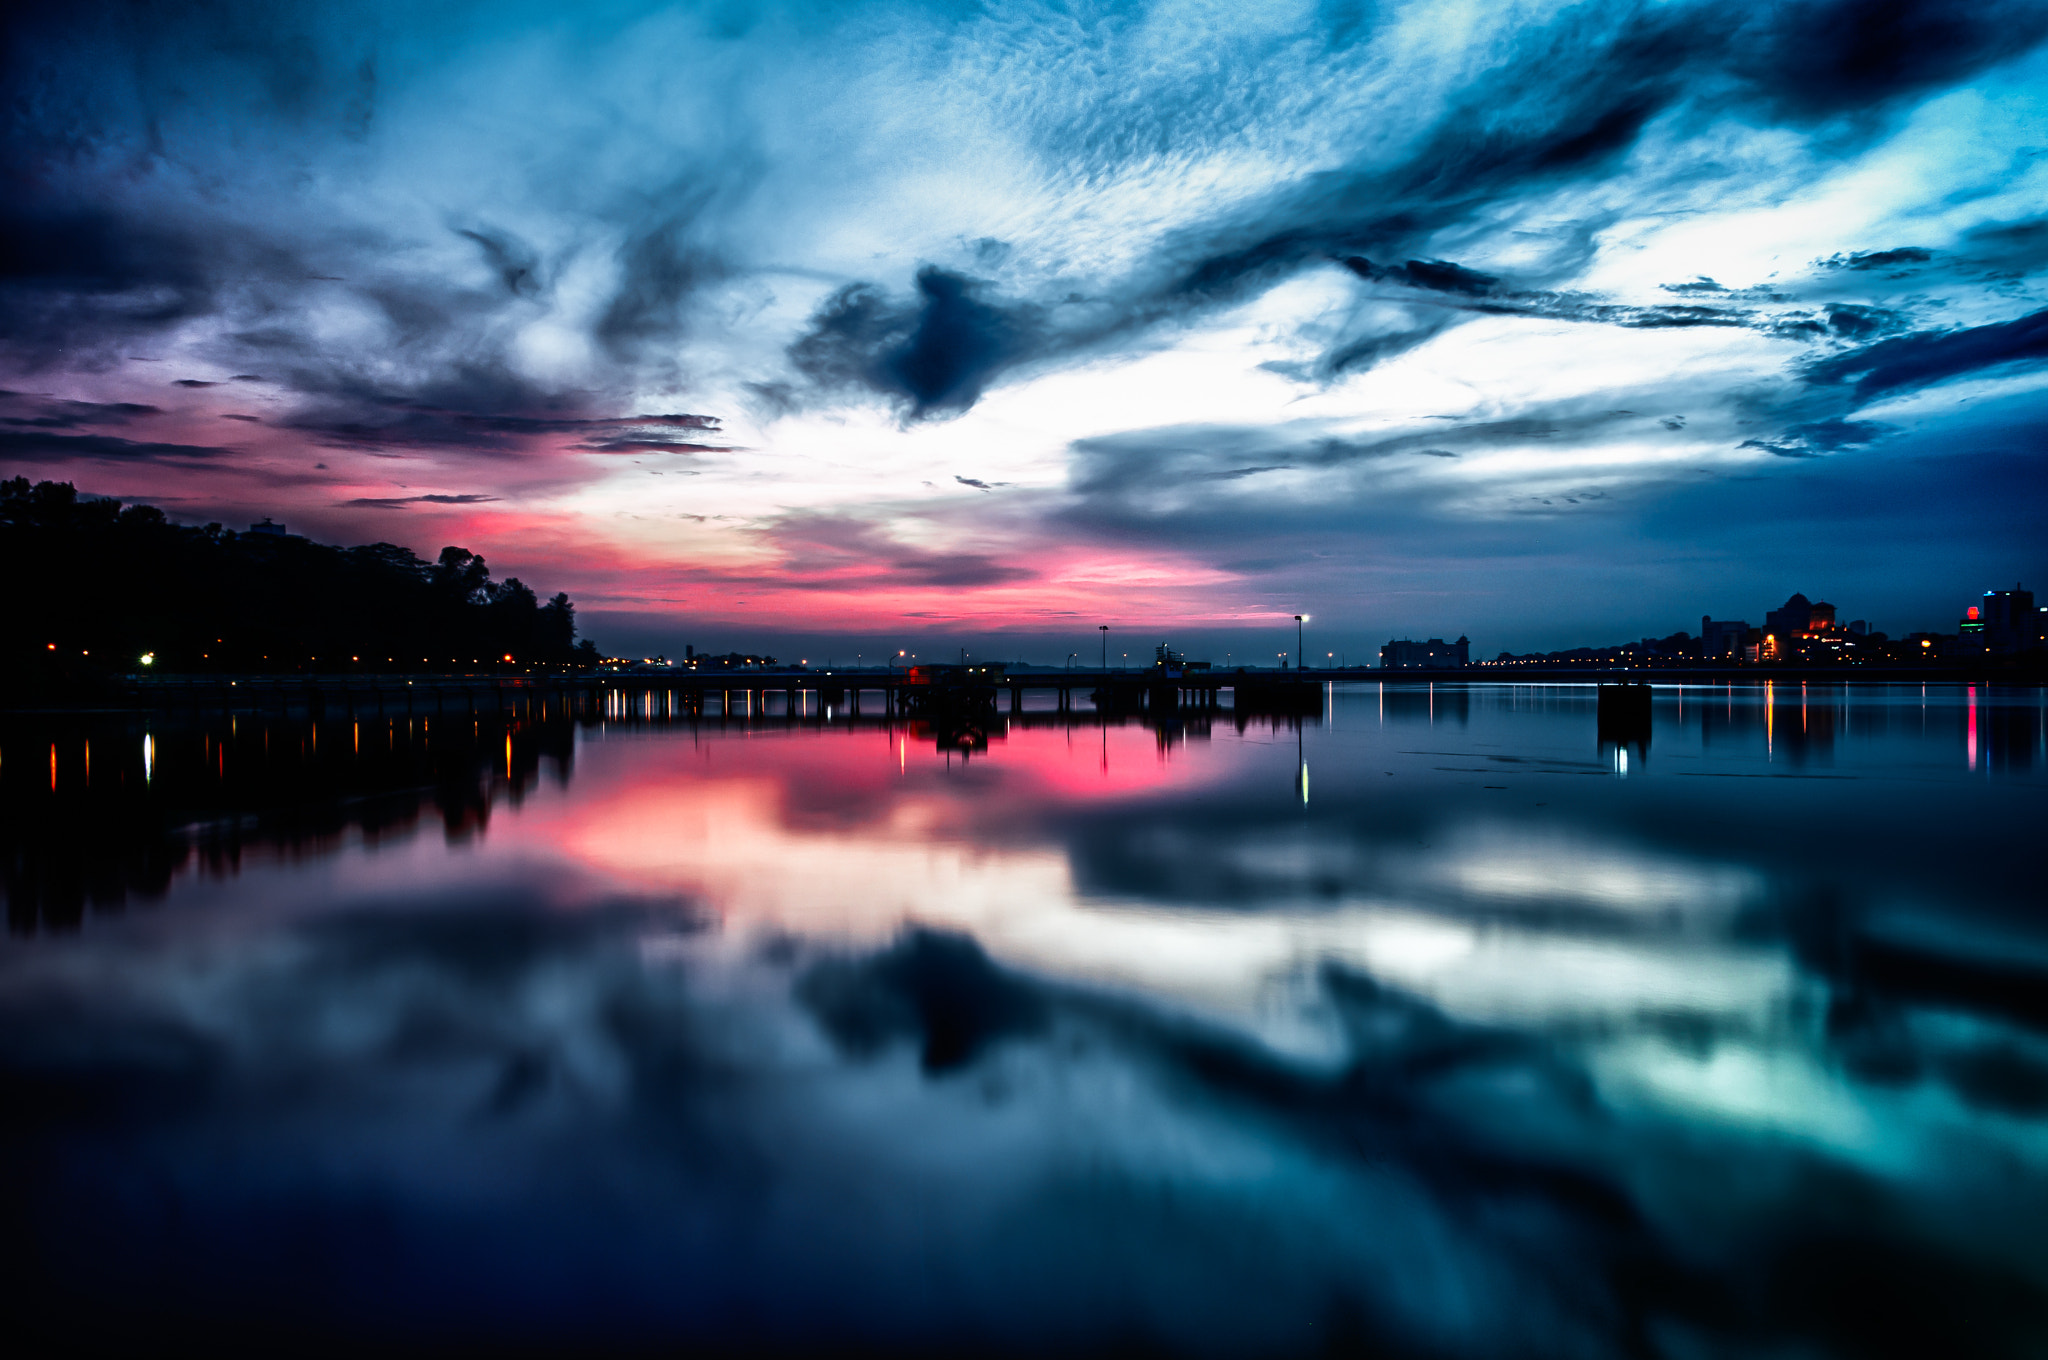 Photograph Blue Reflection by Gordon Chiam on 500px